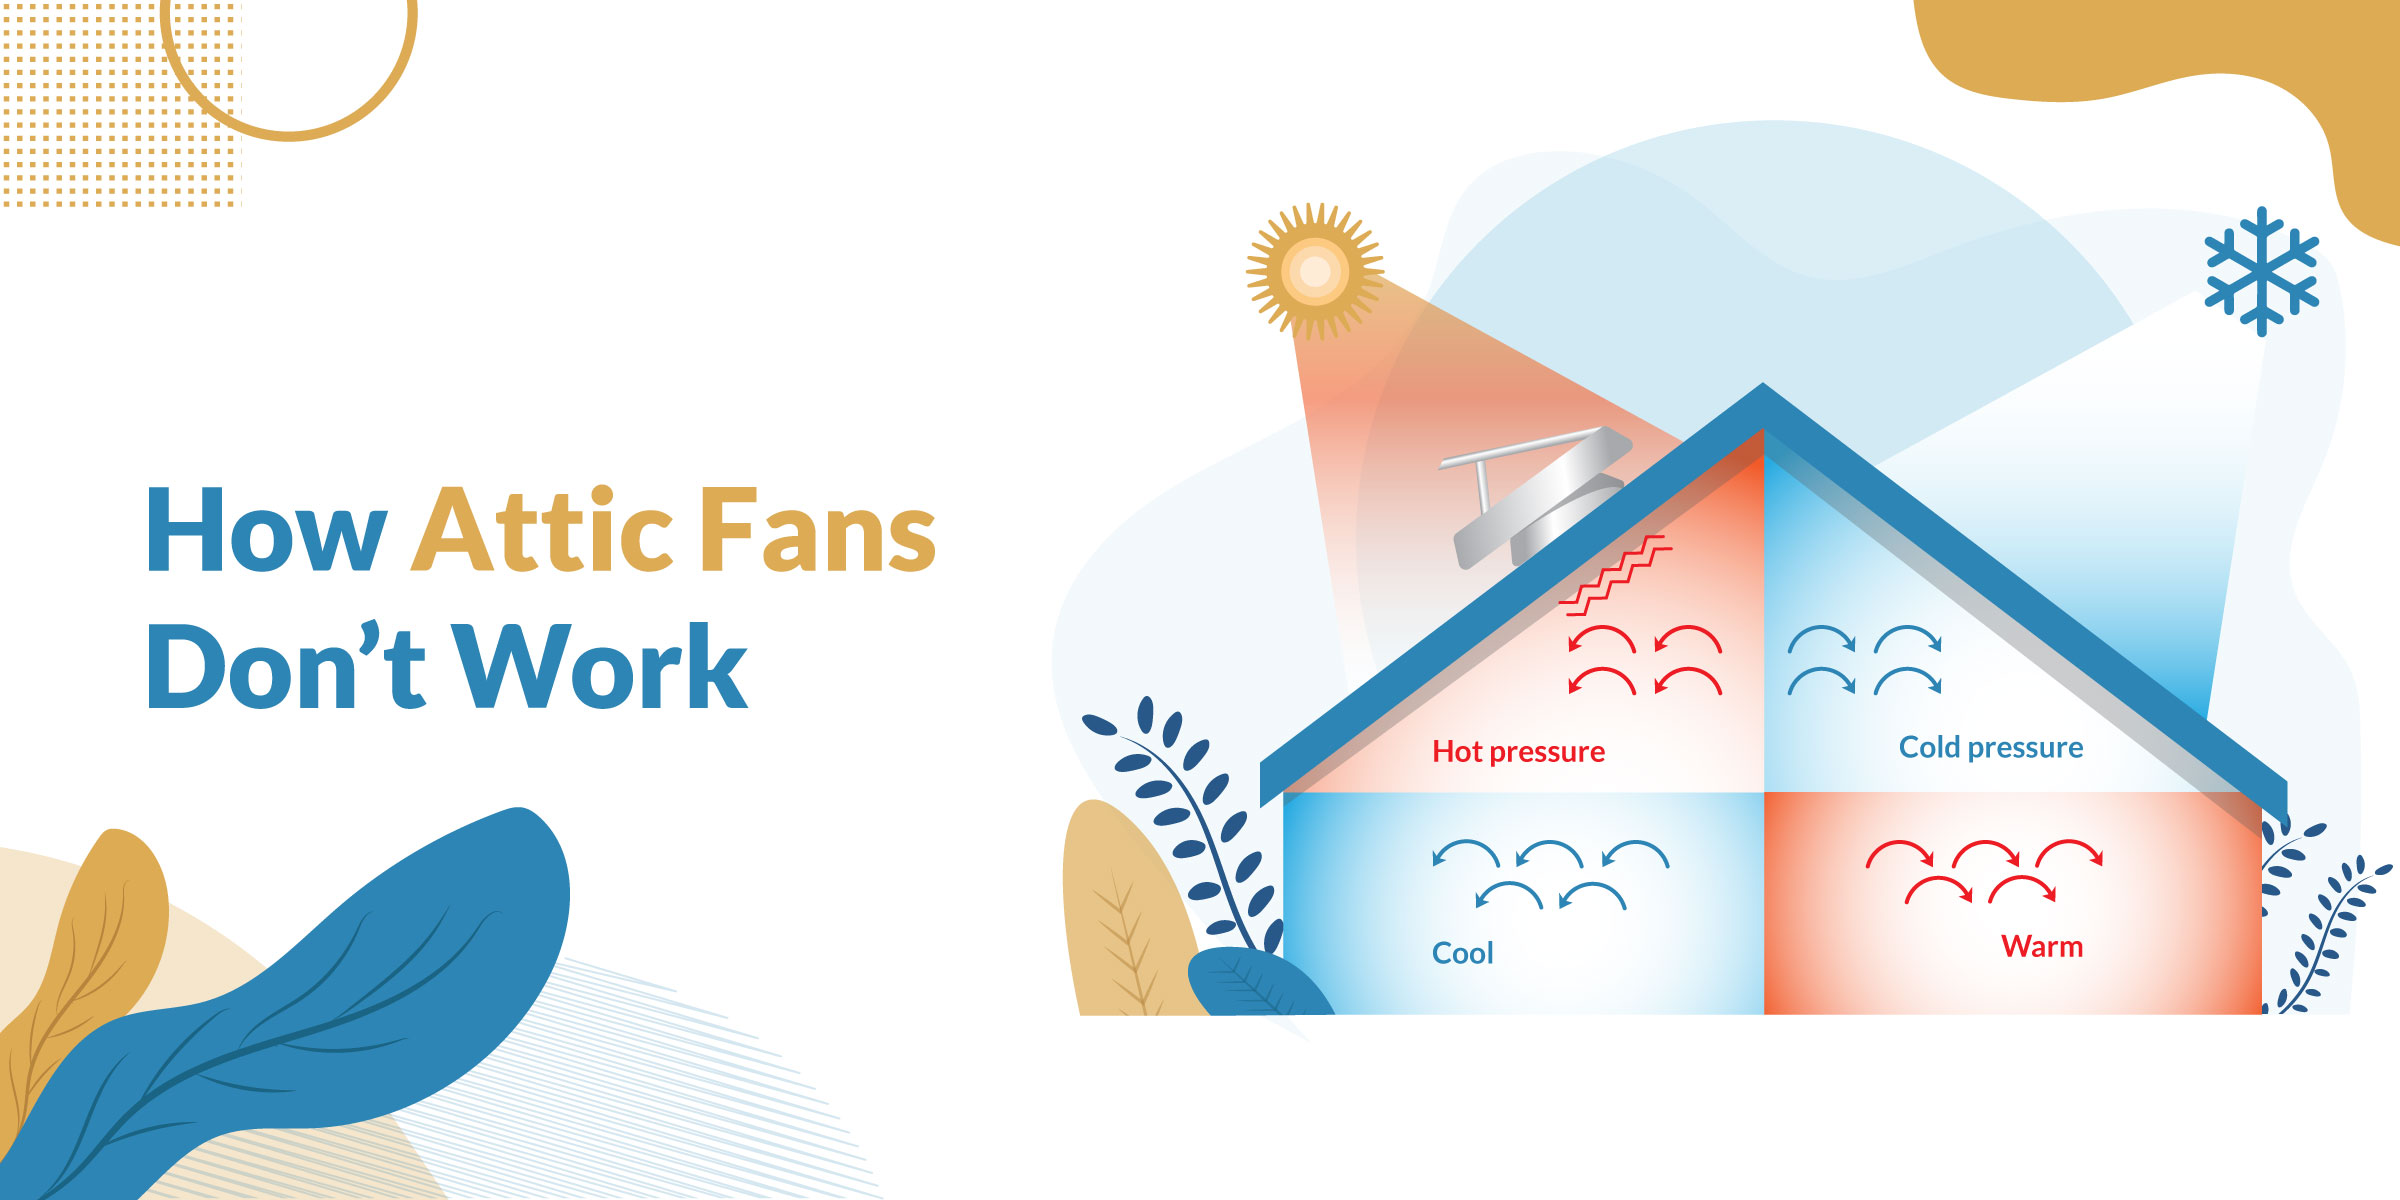 How Attic Fans Don't Work